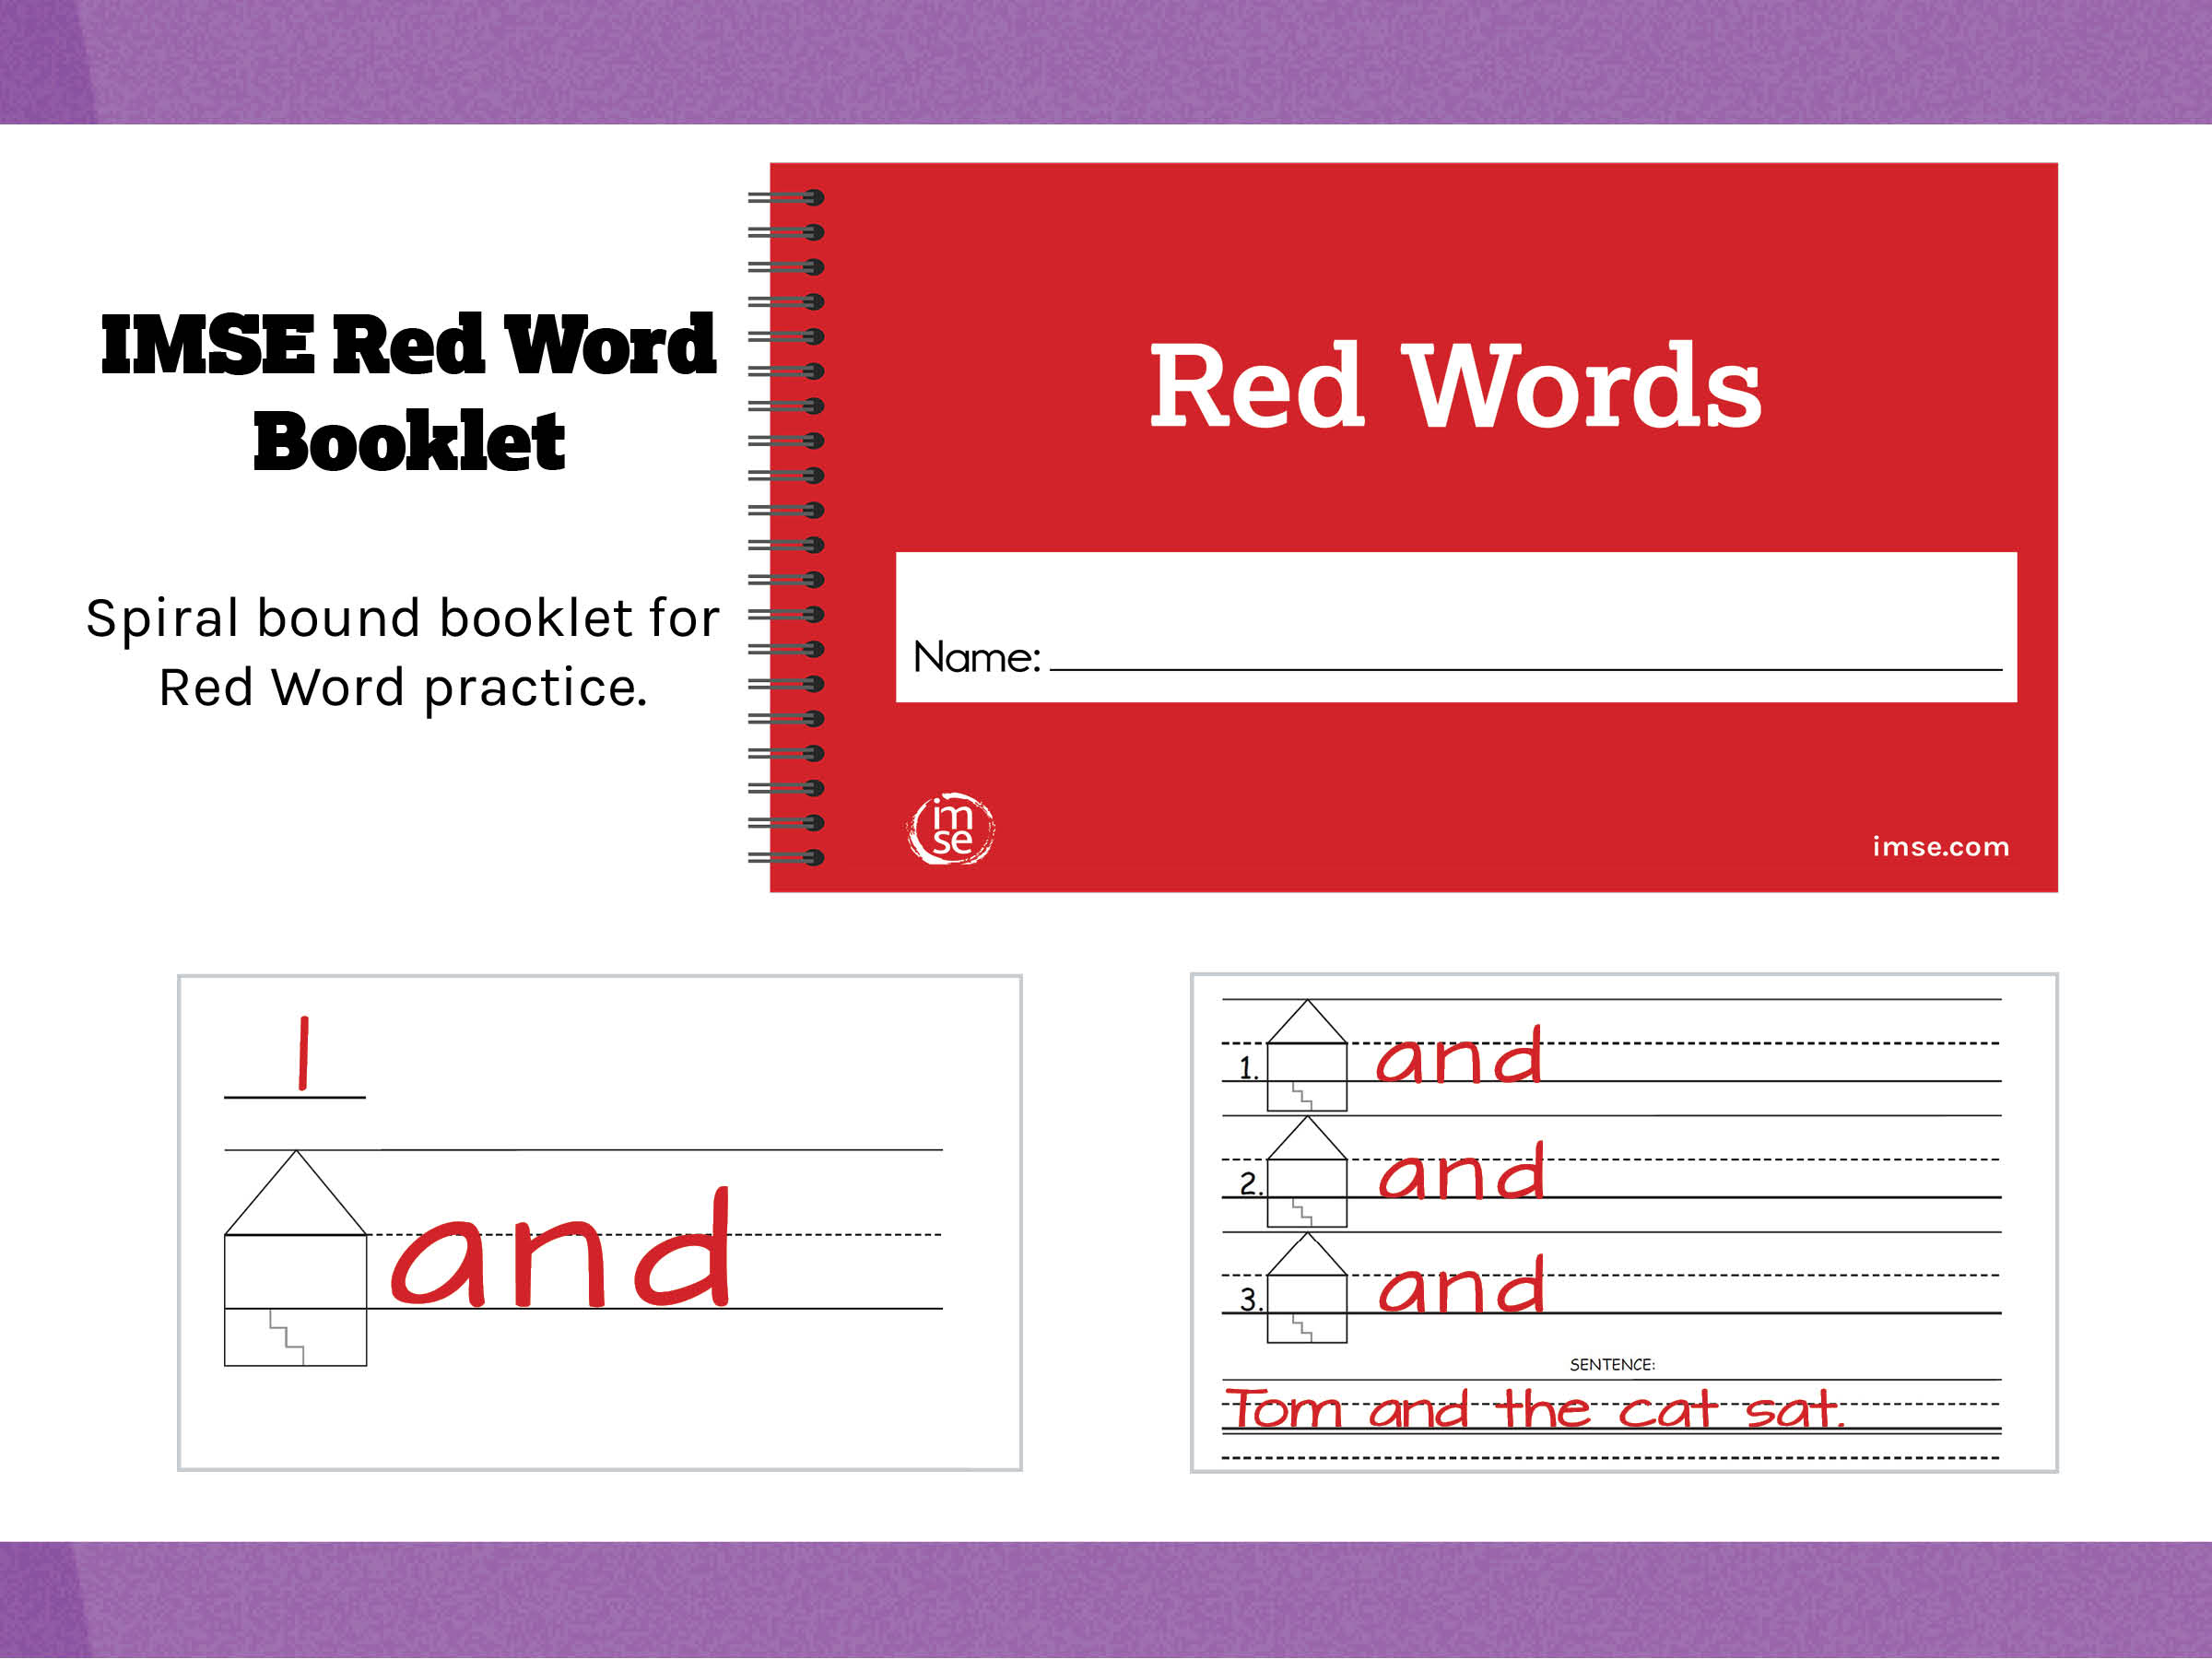 Red Word Booklet